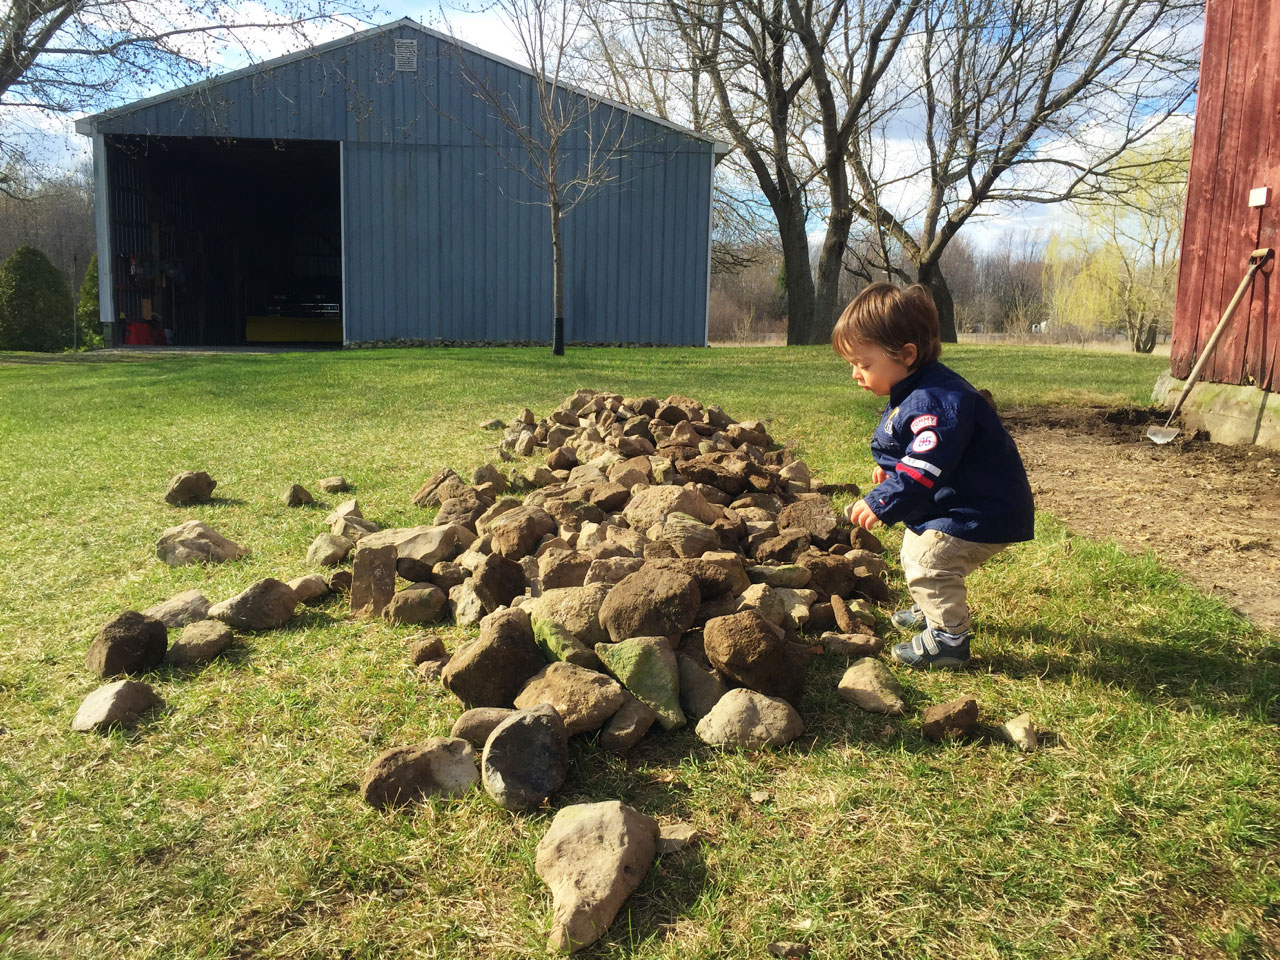 Boo and the rock pile